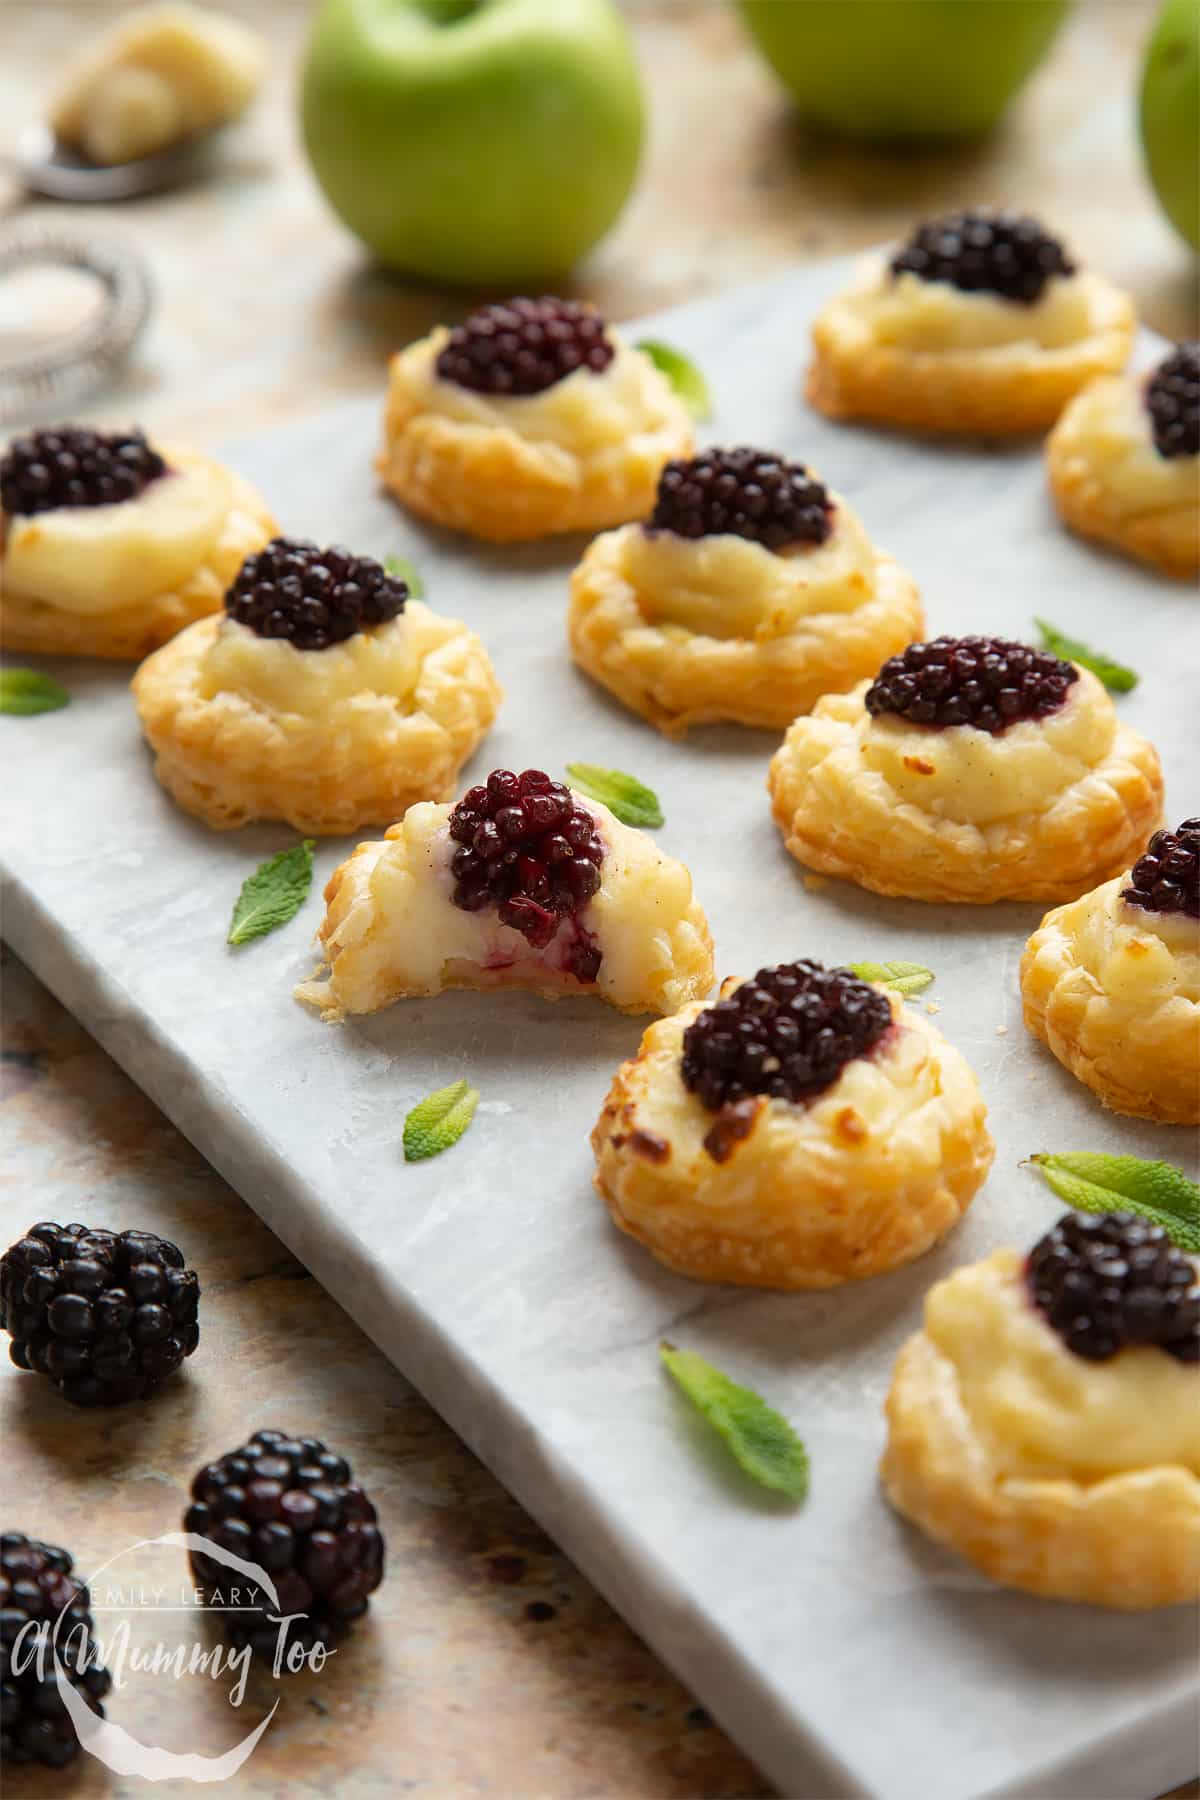 Sixteen blackberry tartlets comprised of a small puff pastry disc topped with sliced apple, pastry cream and a blackberry sit on a marble board with tiny mint leaves scattered around them. One has a bite taken out of it.